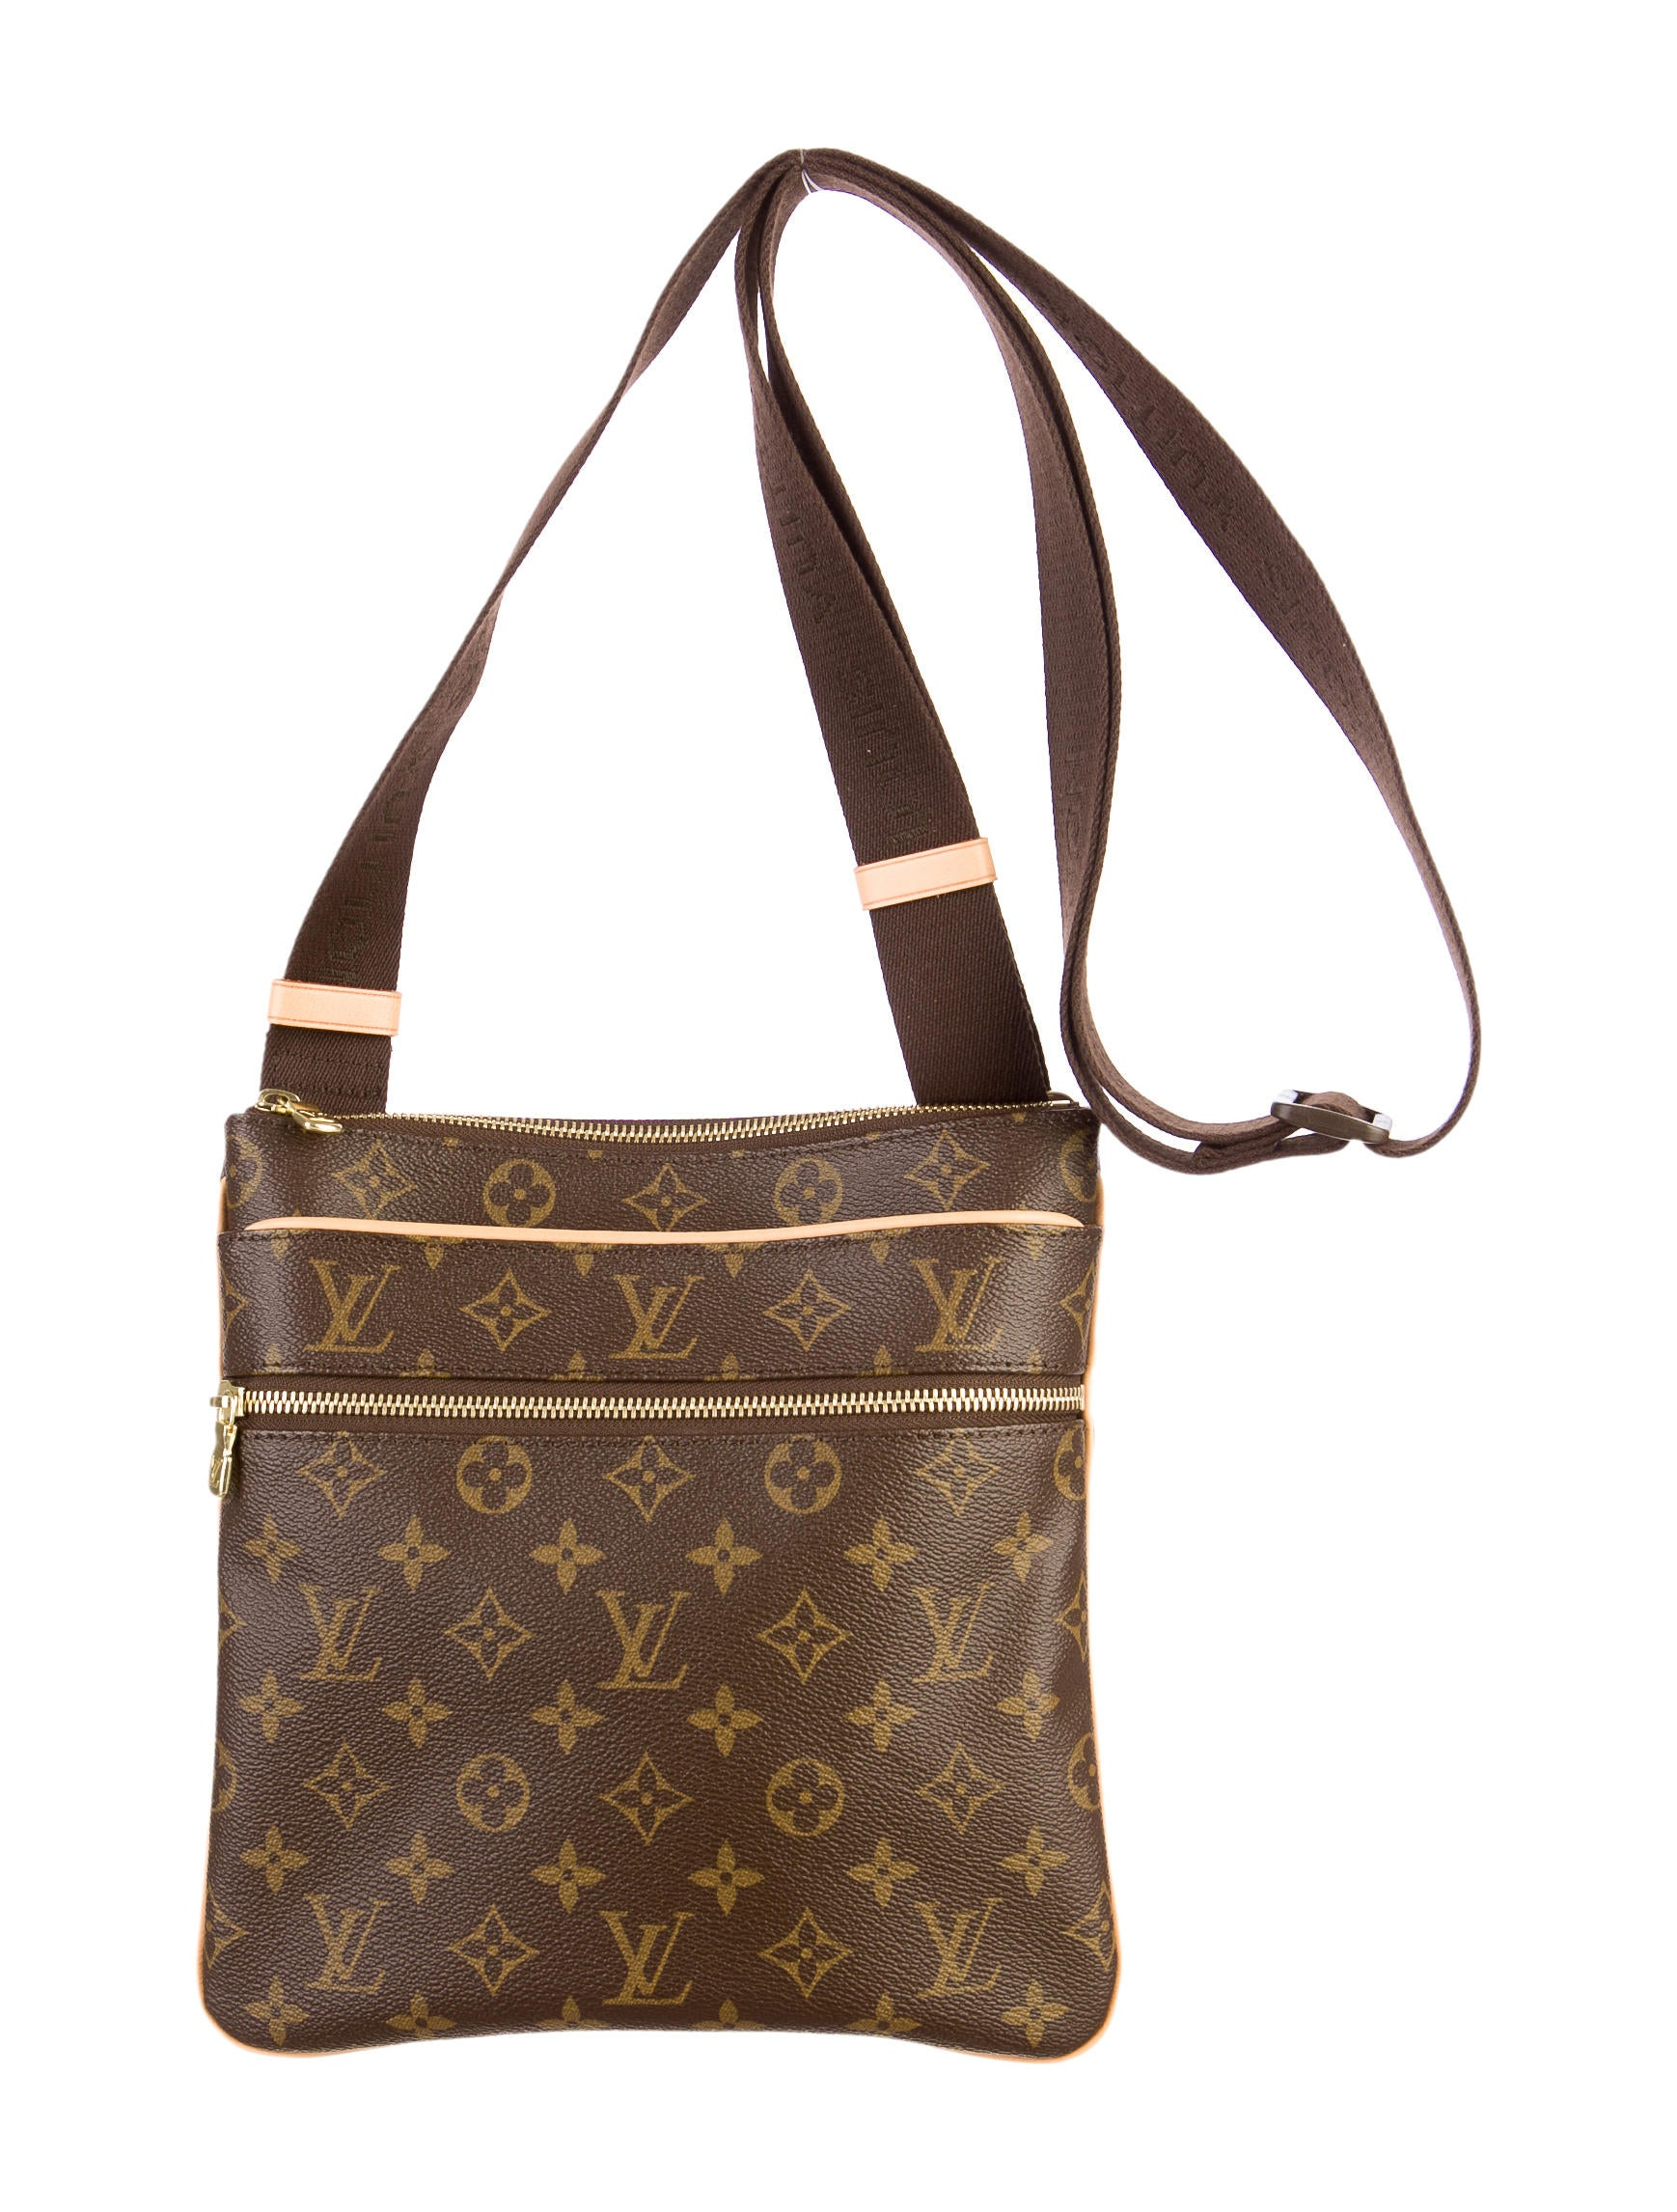 Louis Vuitton Valmy Pochette Bag - Handbags - LOU32426  66c6f38bdd5e2